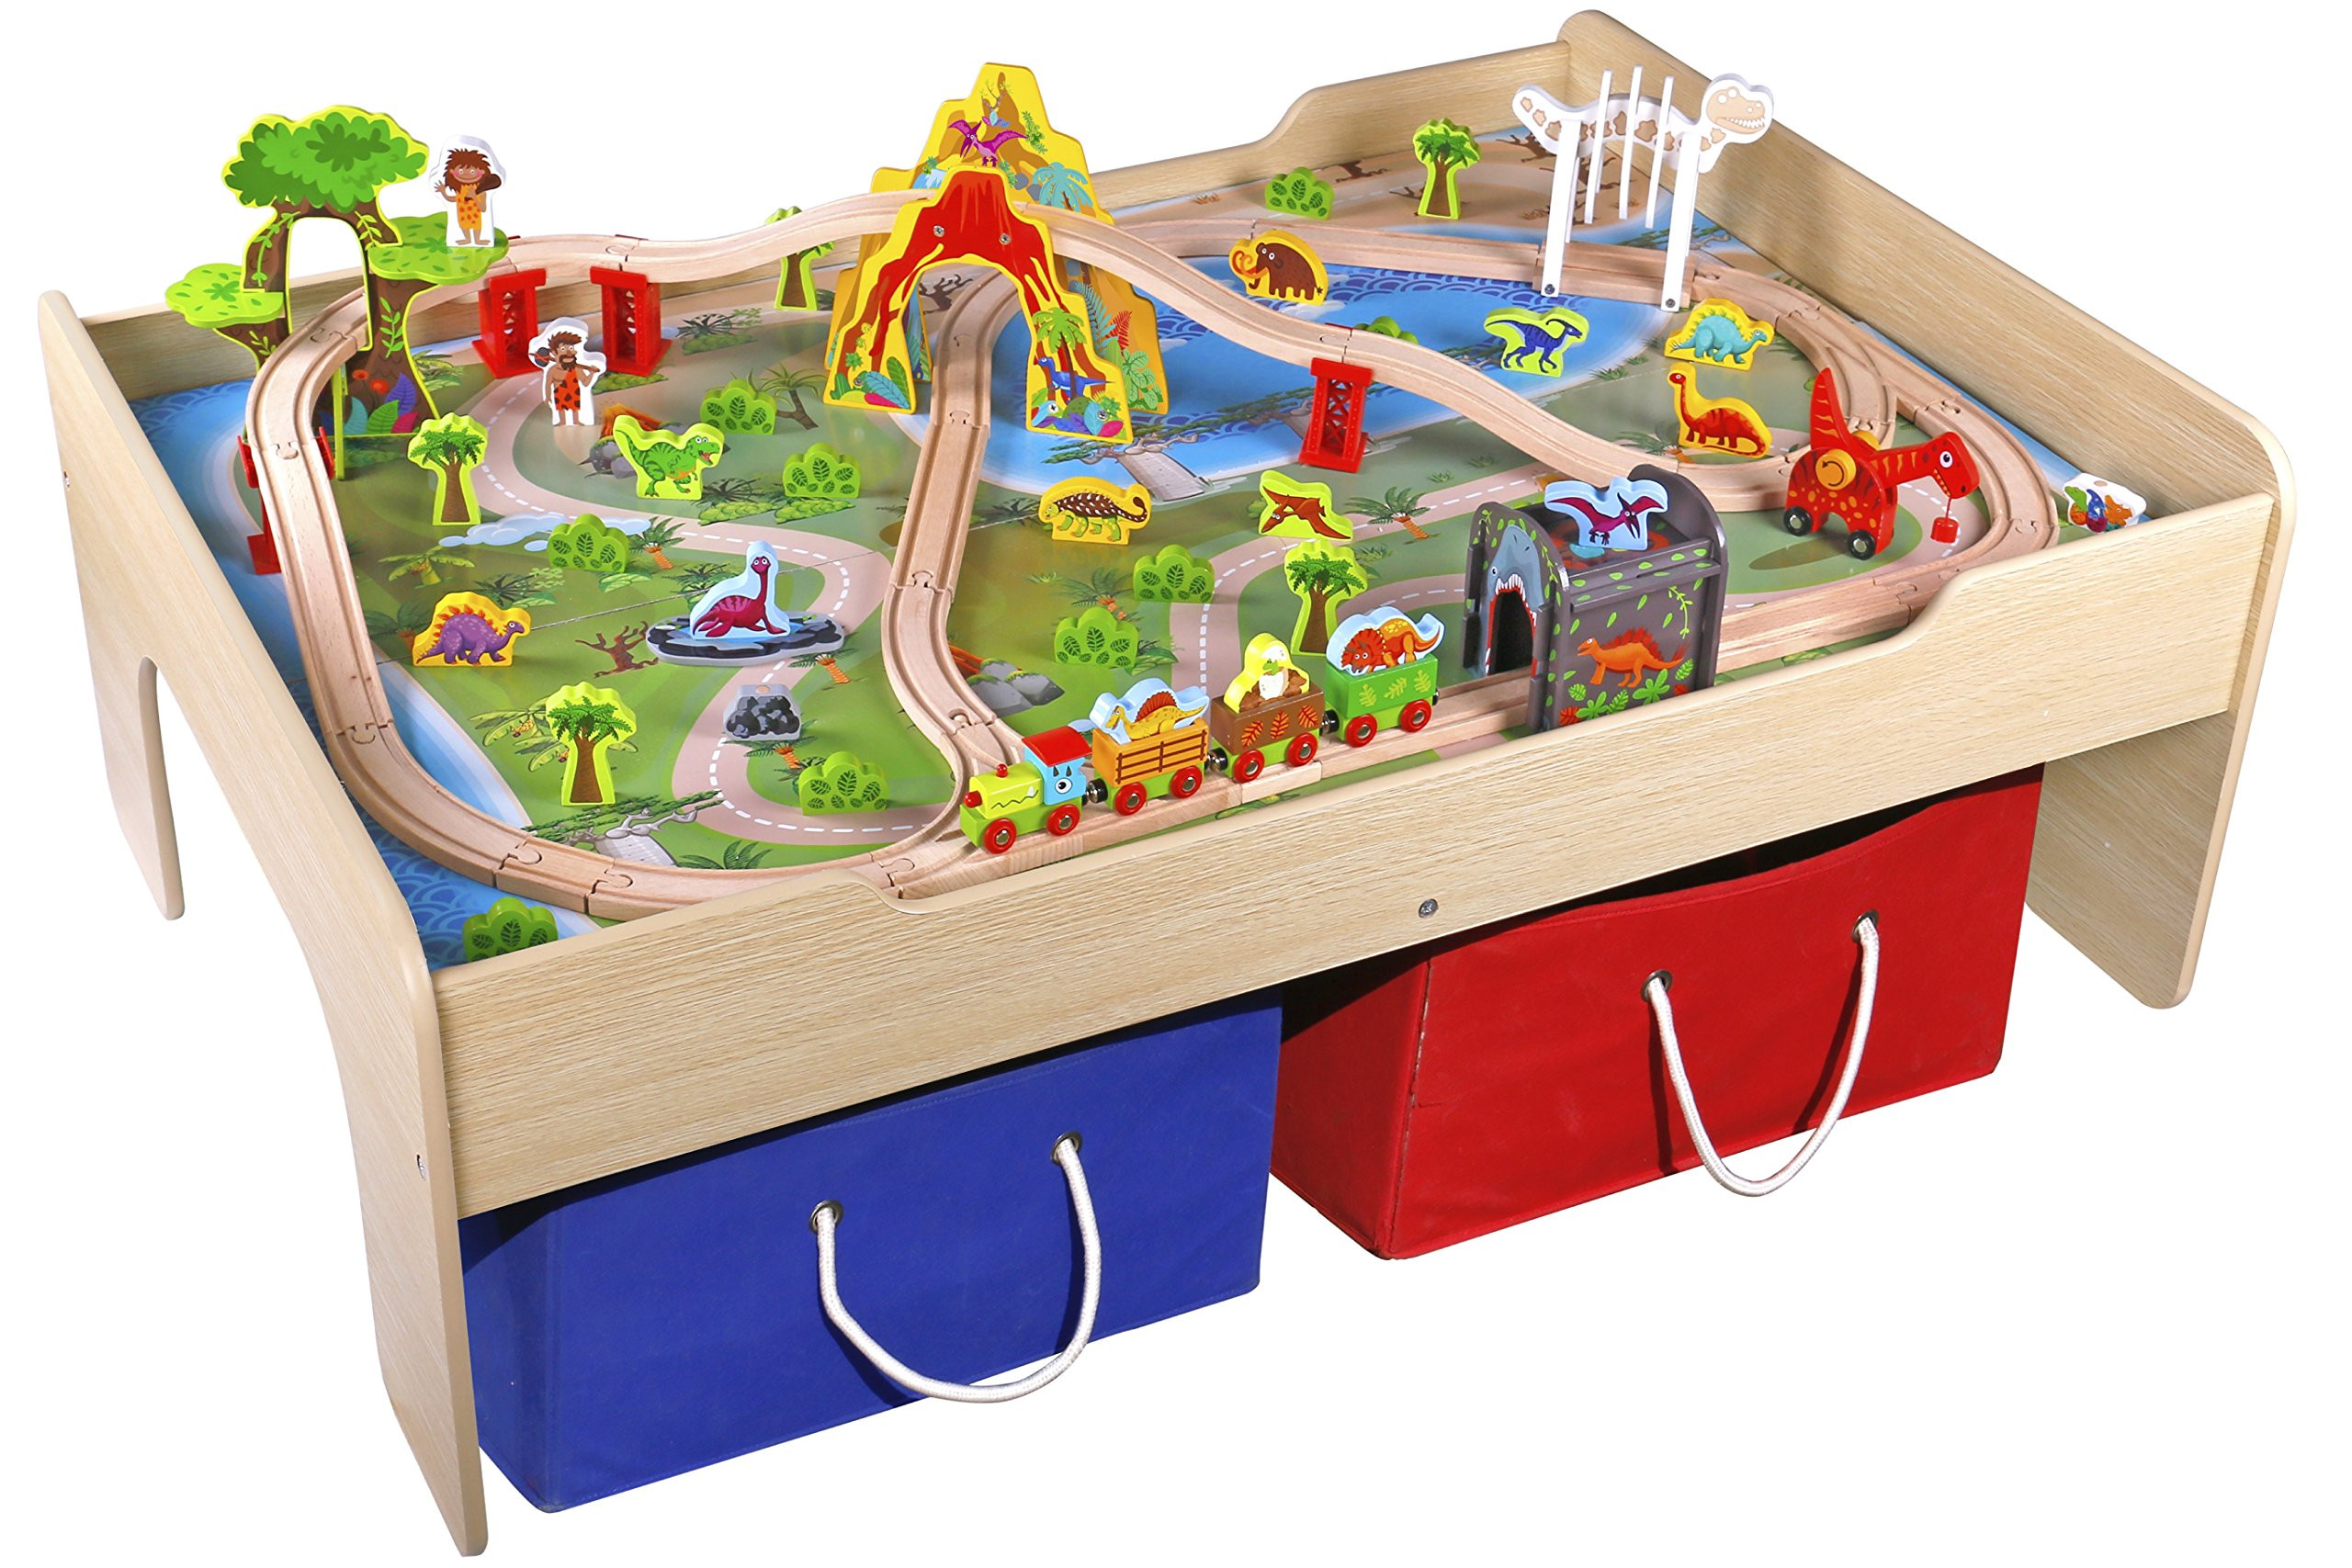 Best Kids Table  Best train table for toddlers